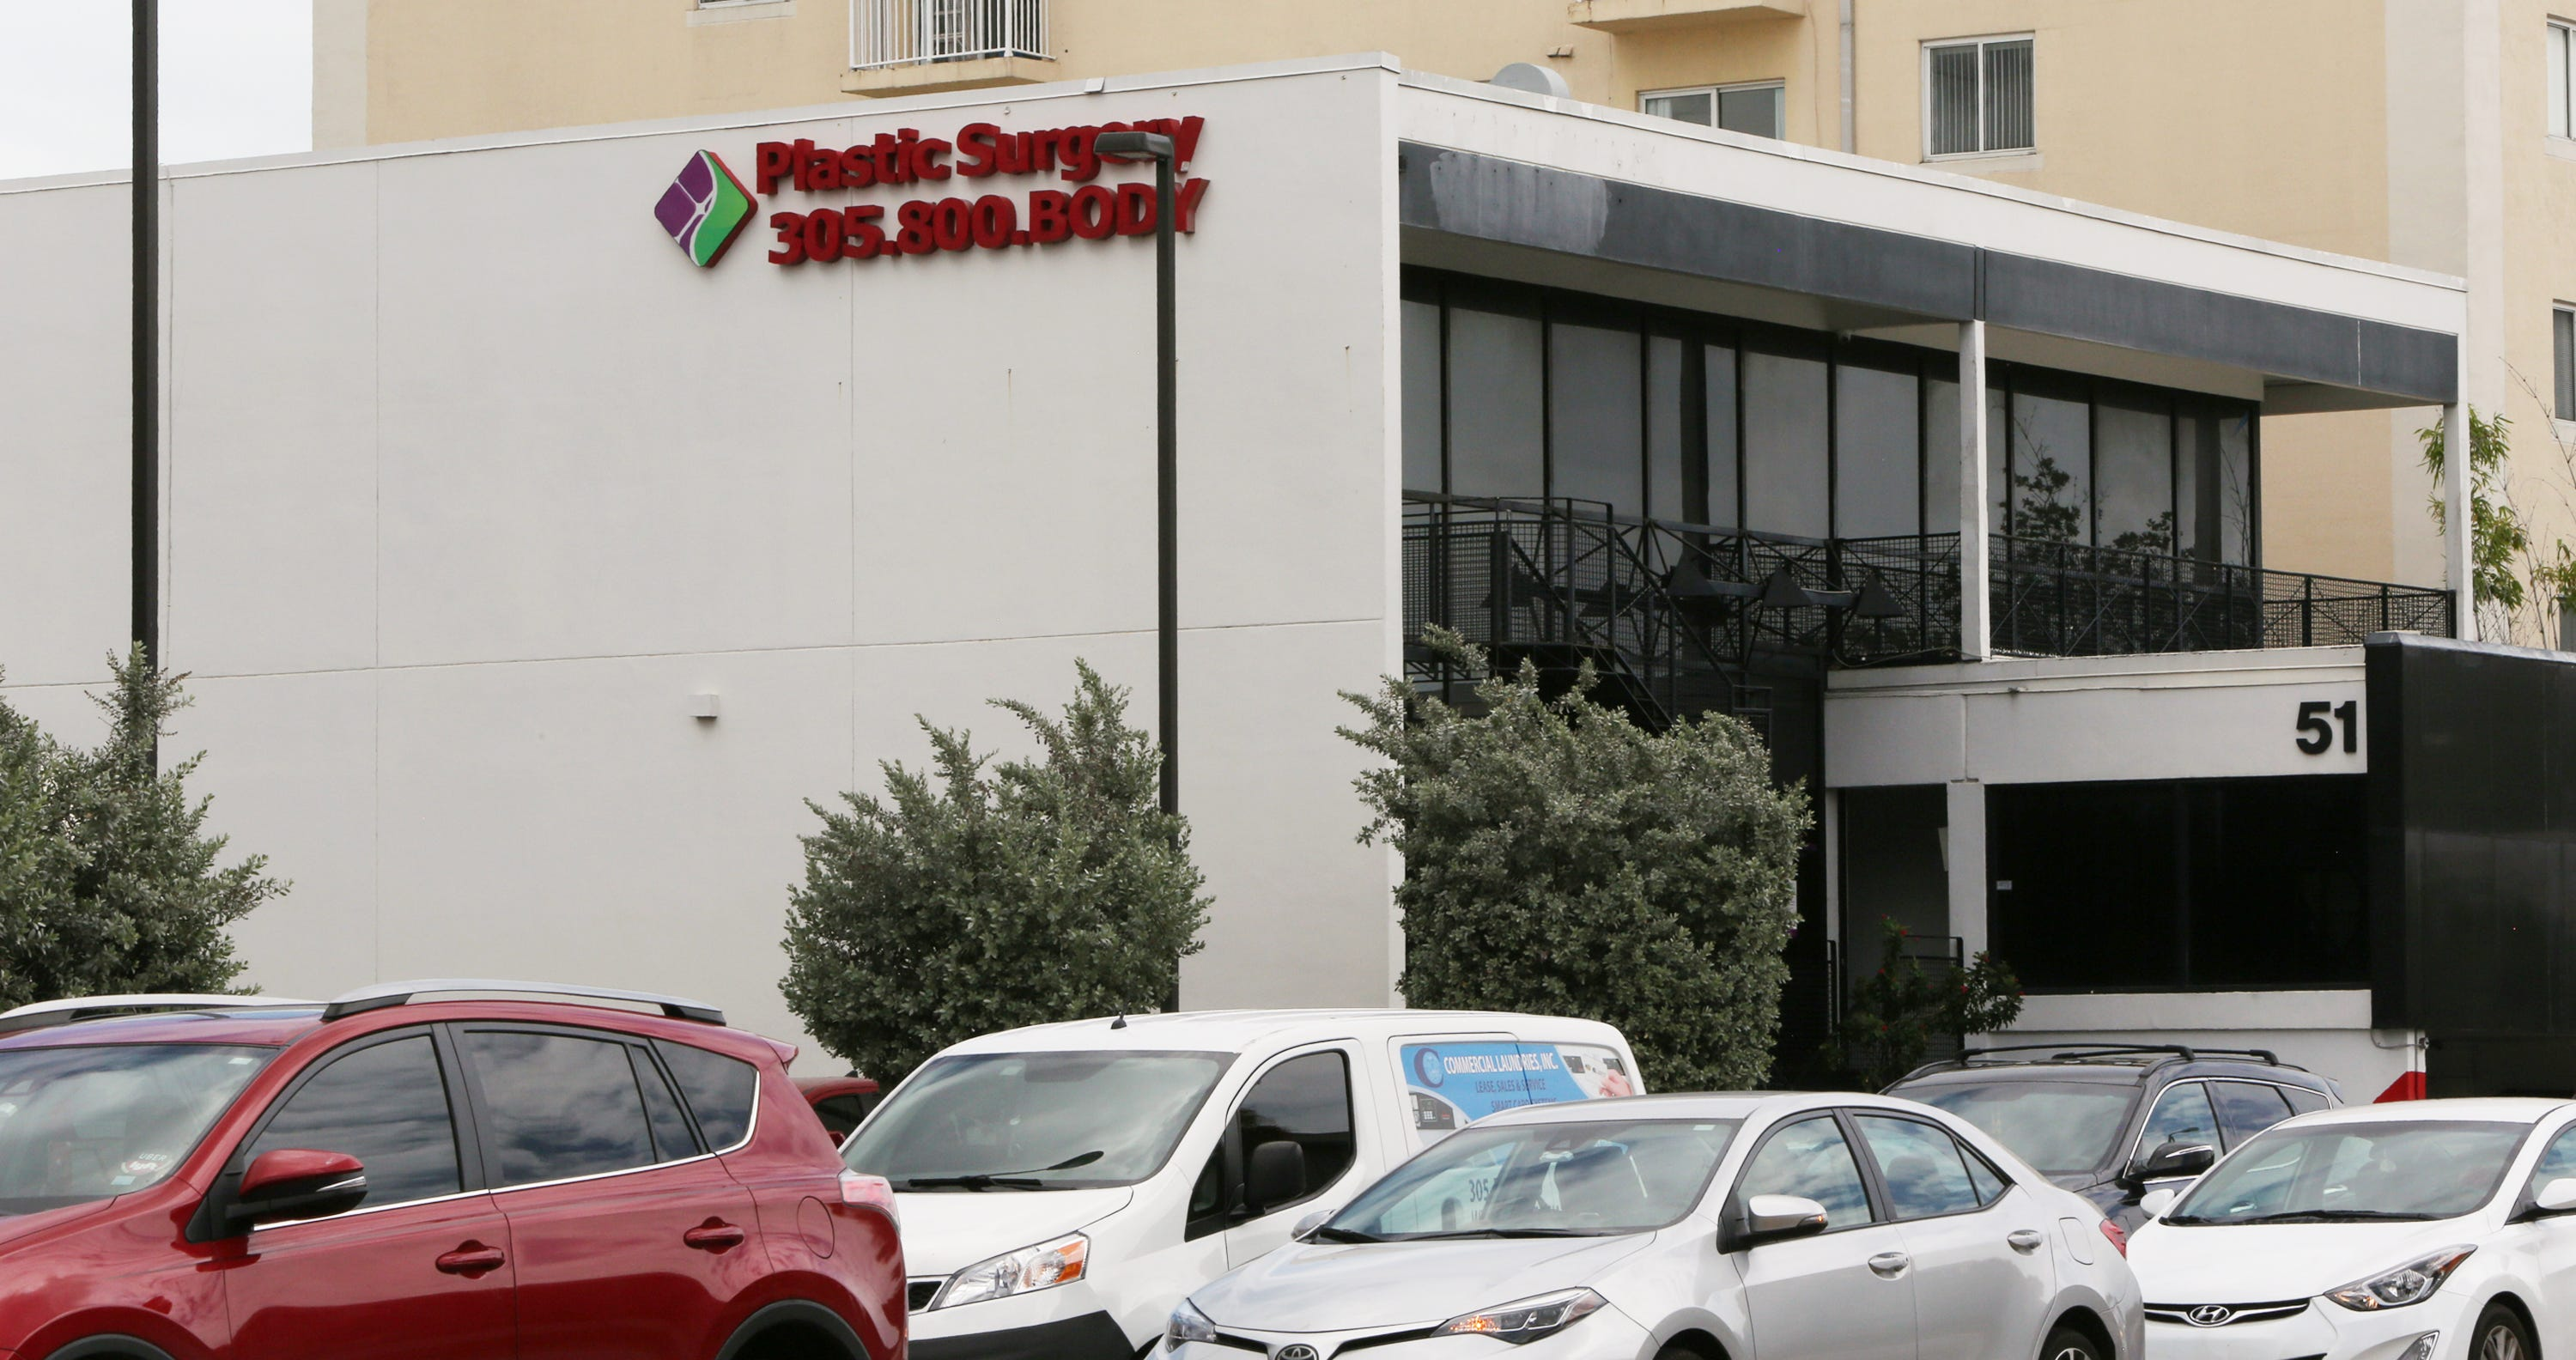 Spectrum Aesthetics in Miami kept a doctor on staff who already was under investigation by the state health department for critically injuring two patients at the clinic.